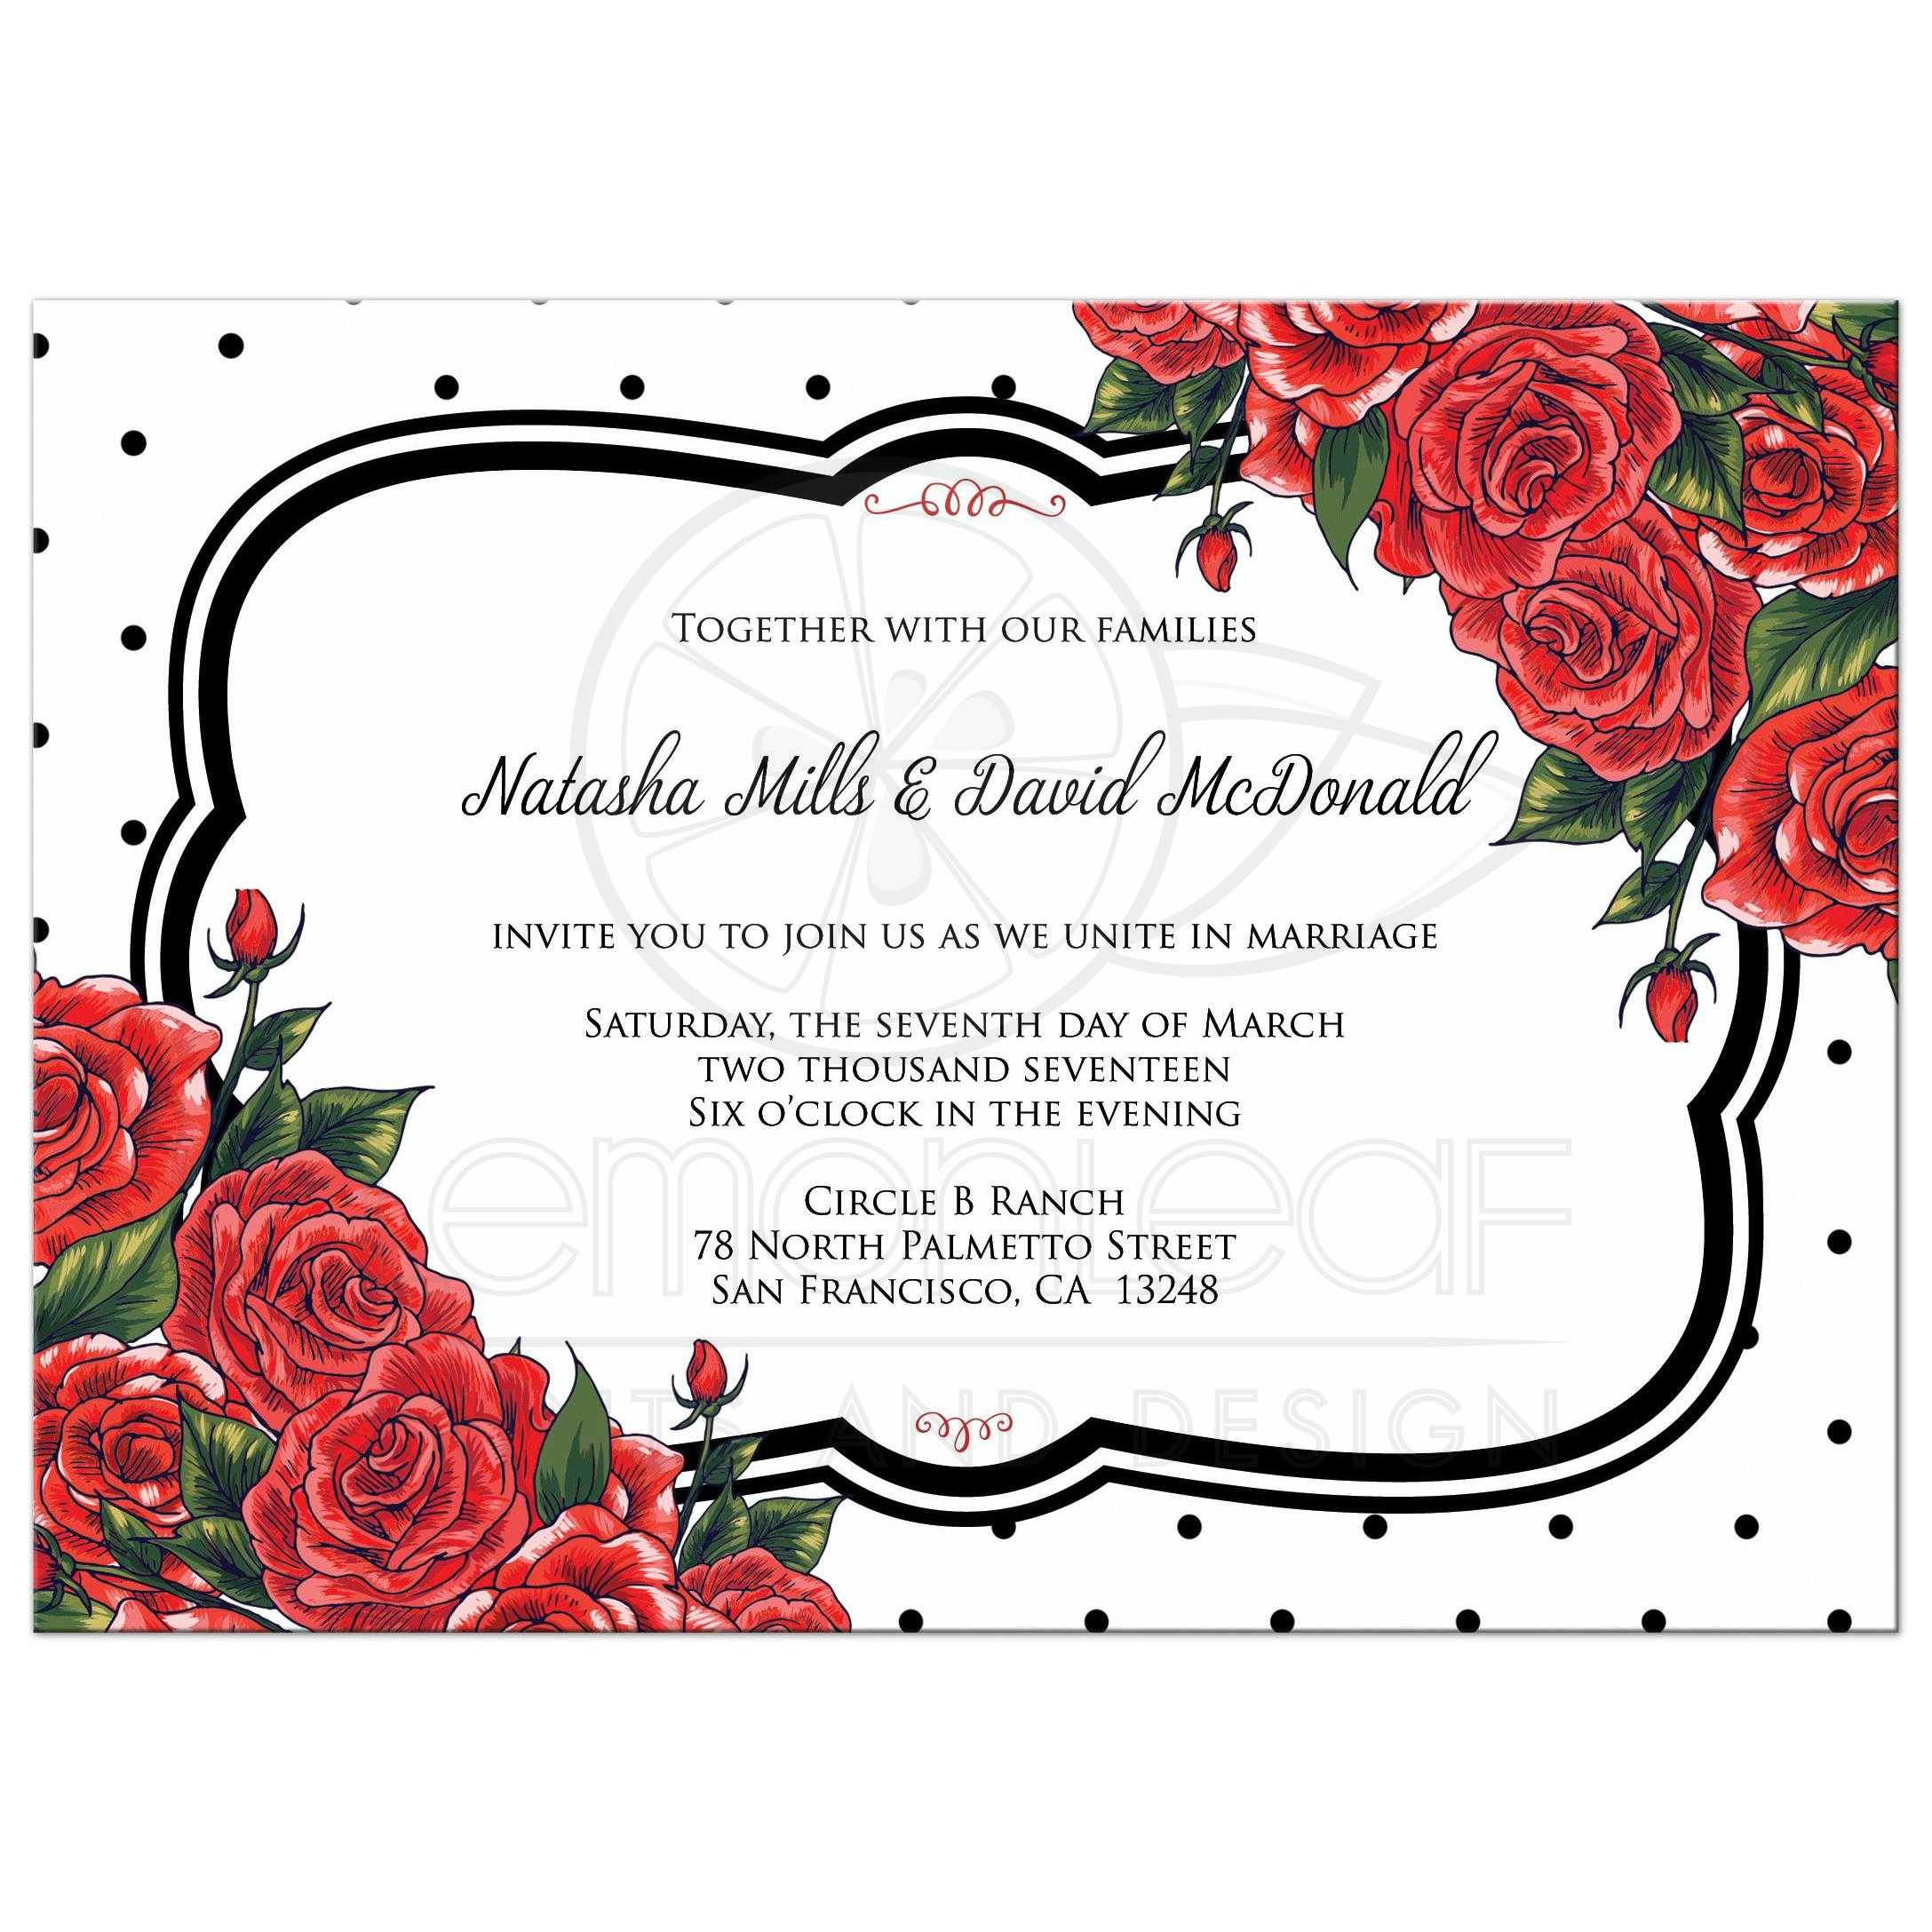 Wedding Invitation Black Polka Dots with Red Roses – Red Rose Wedding Invitation